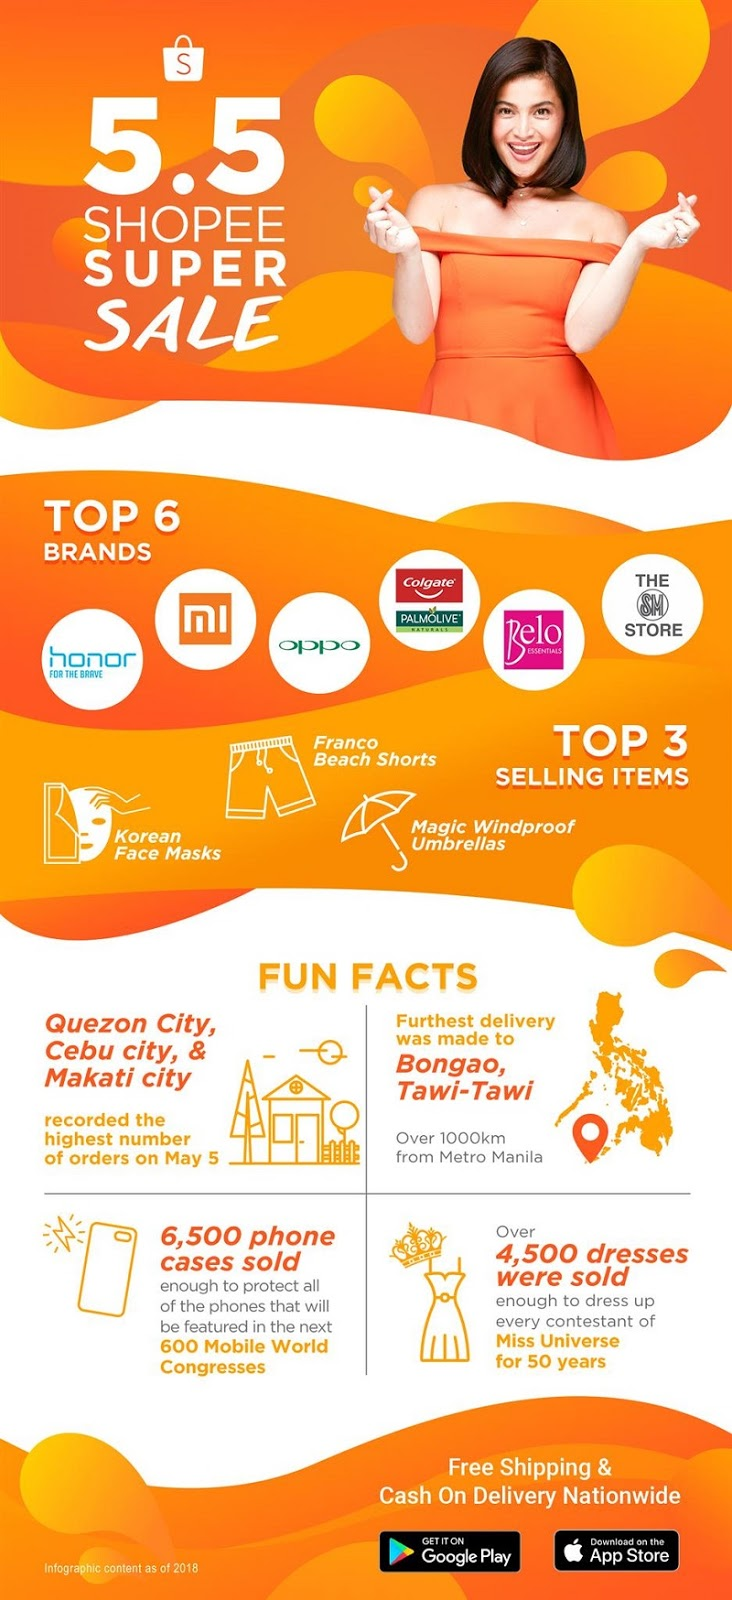 Shopee 5.5 Super Sale Highlights